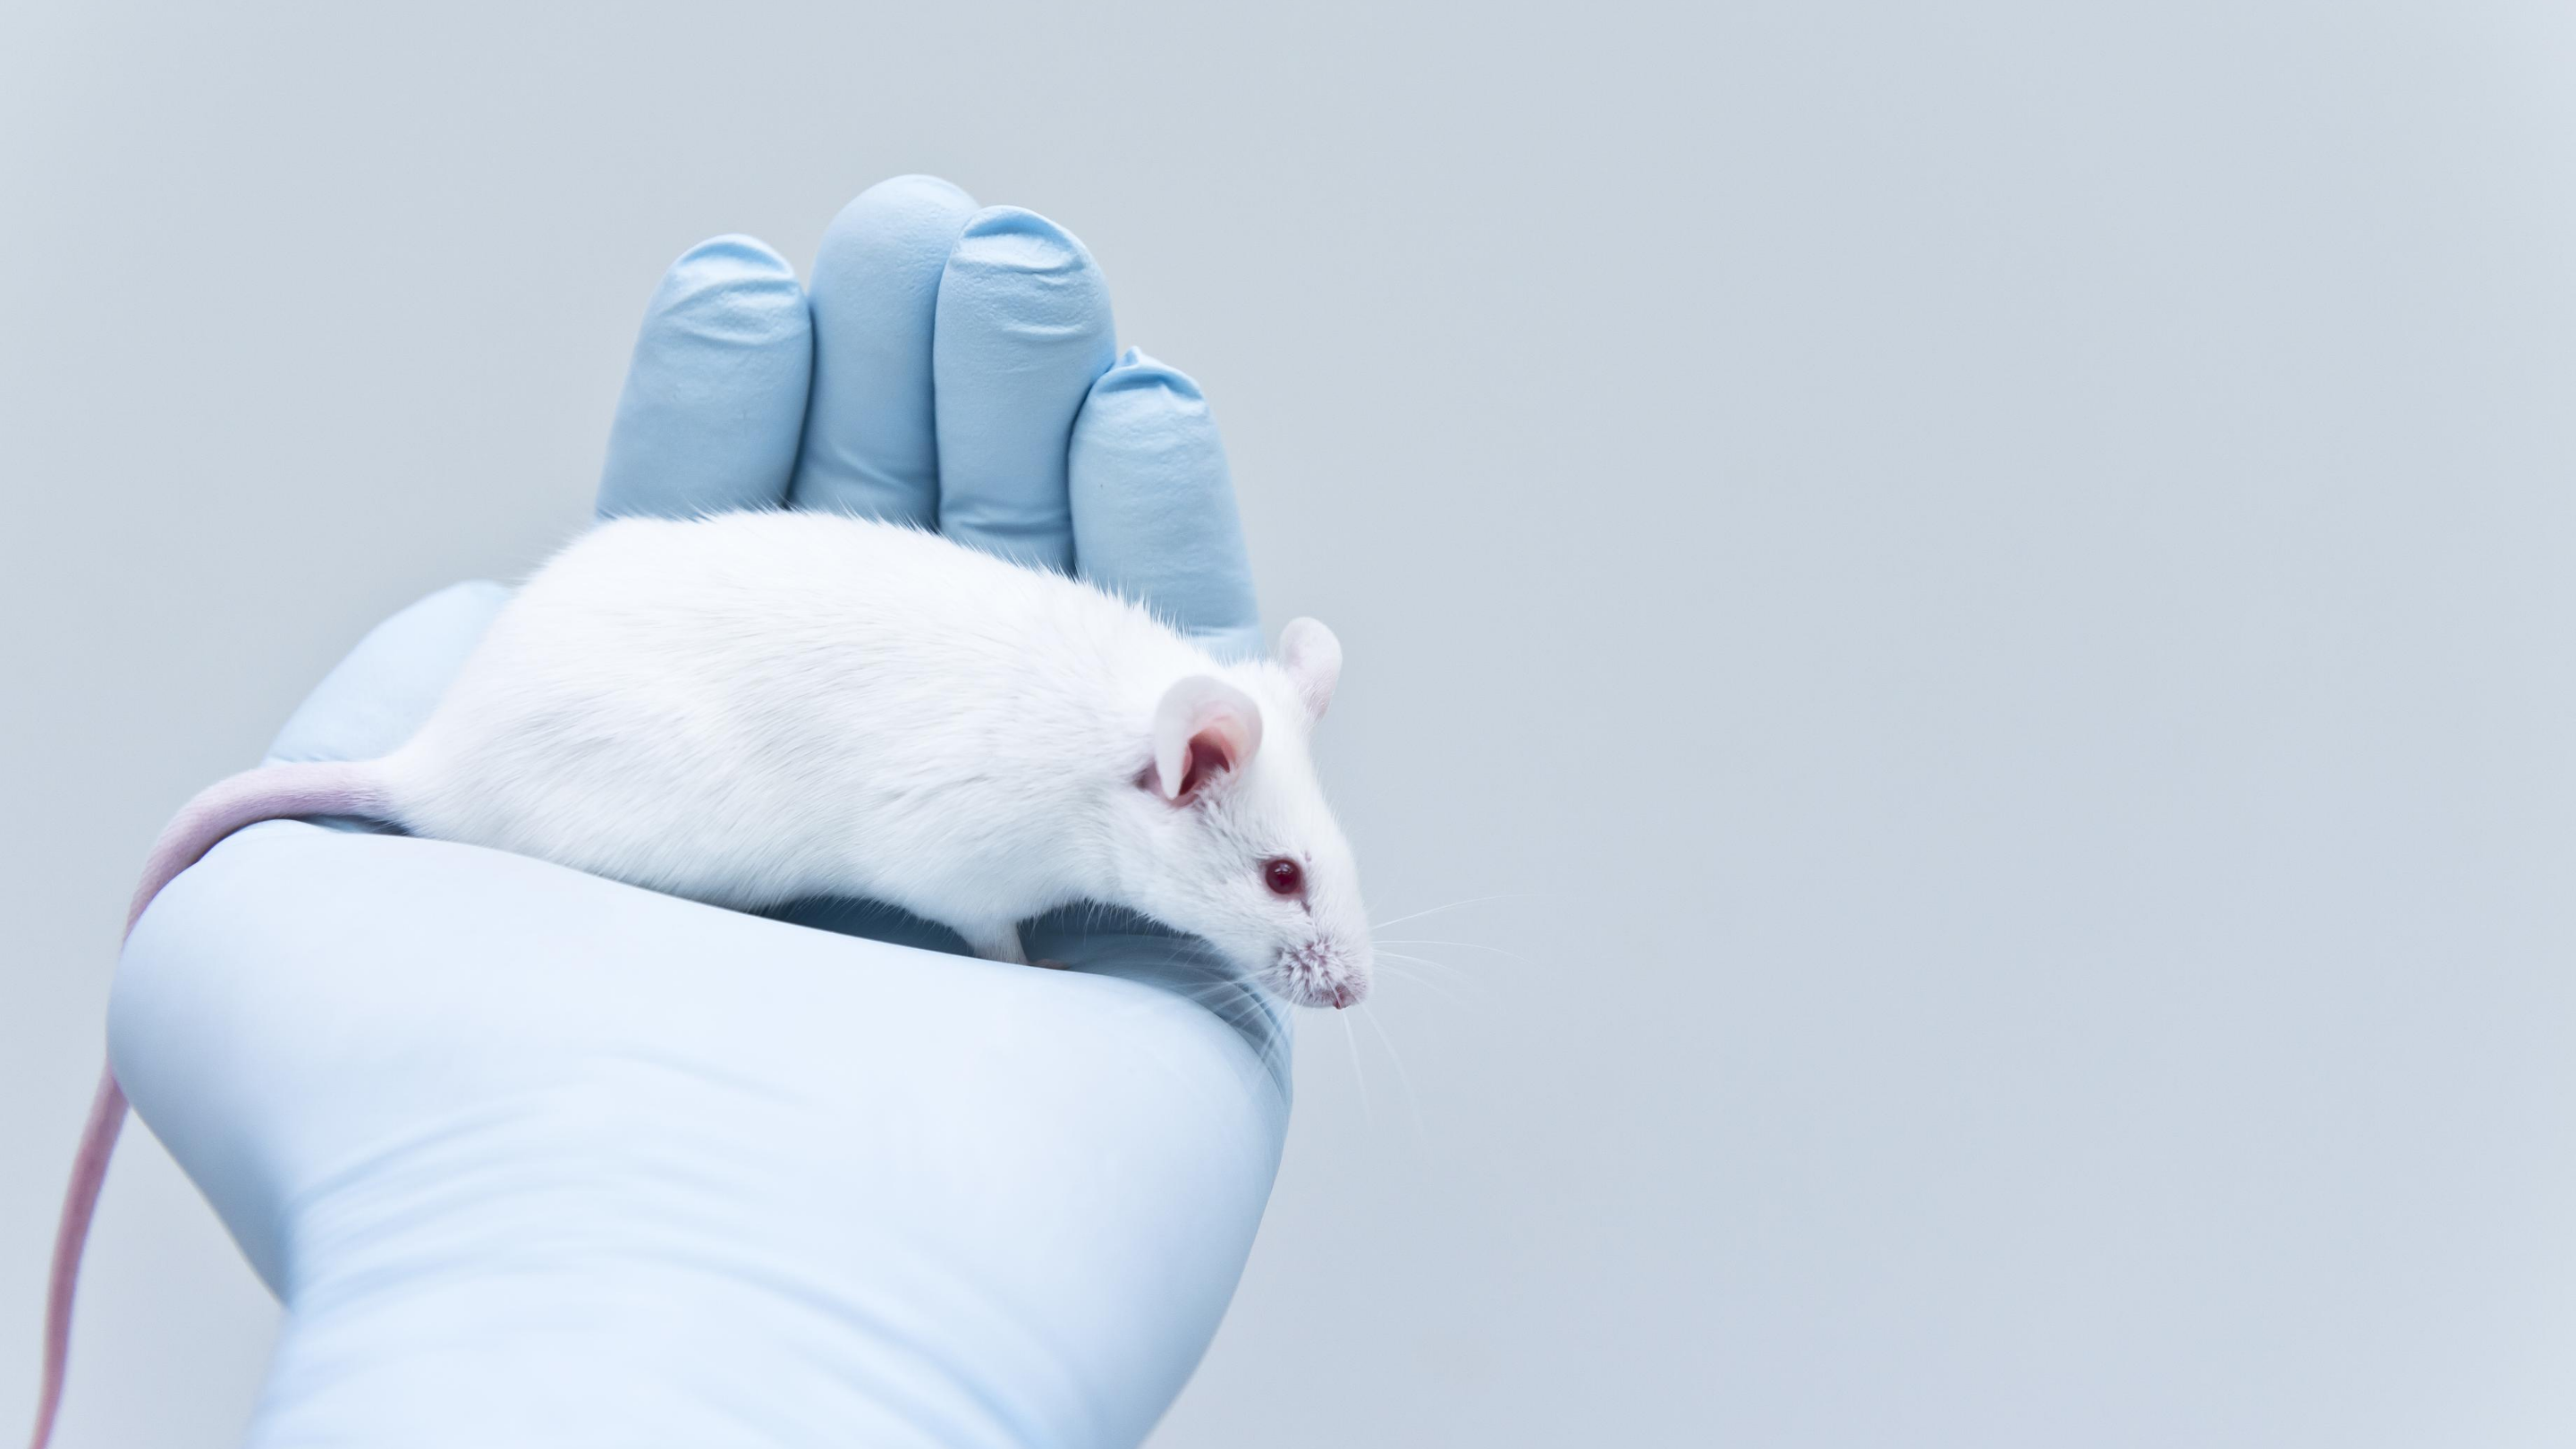 A white mouse rests in a gloved hand